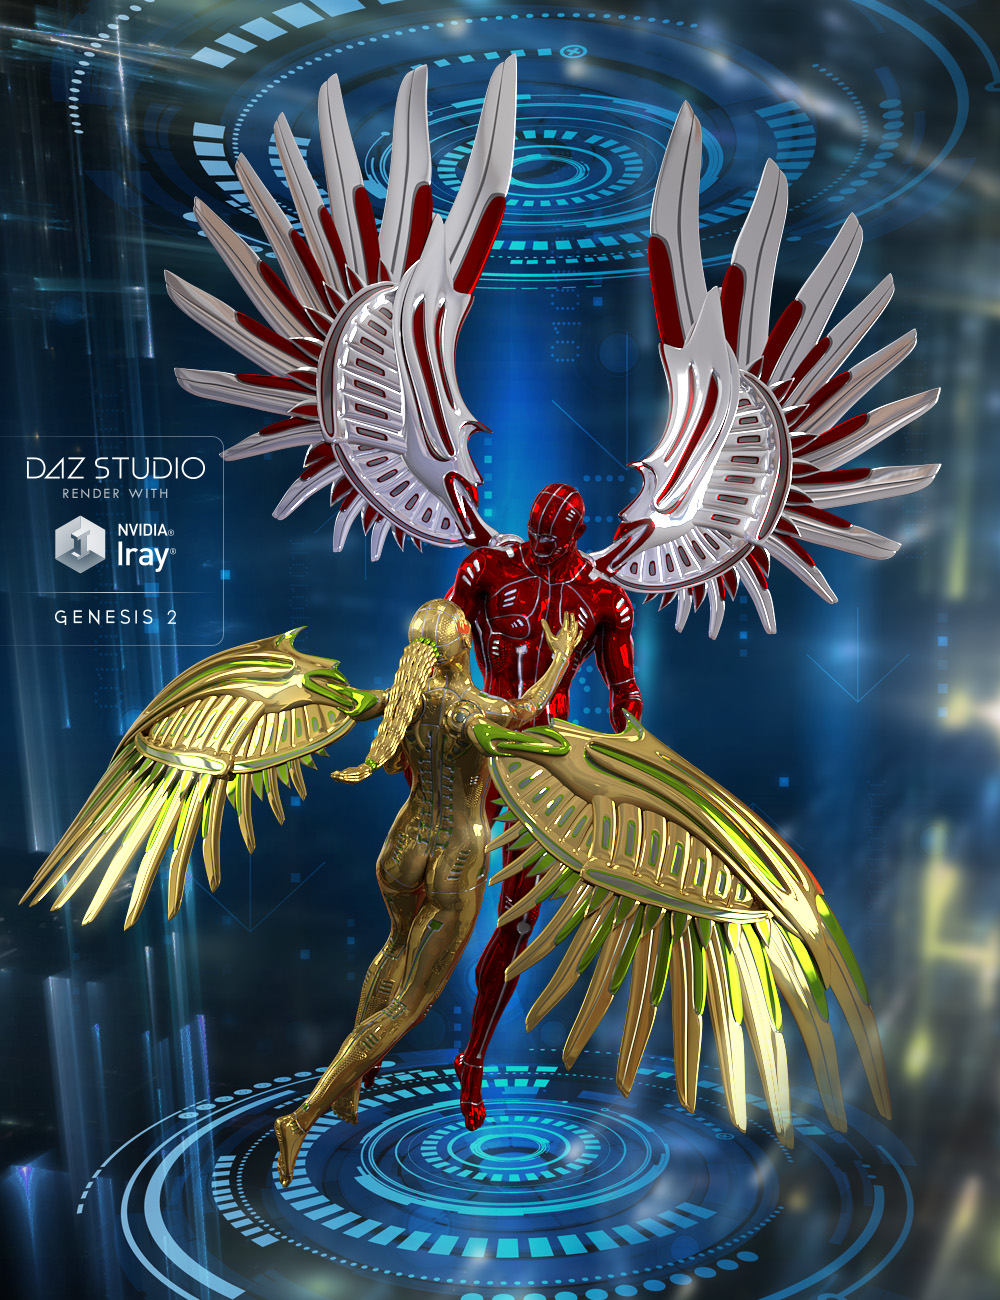 Cyber Wings by: midnight_stories, 3D Models by Daz 3D